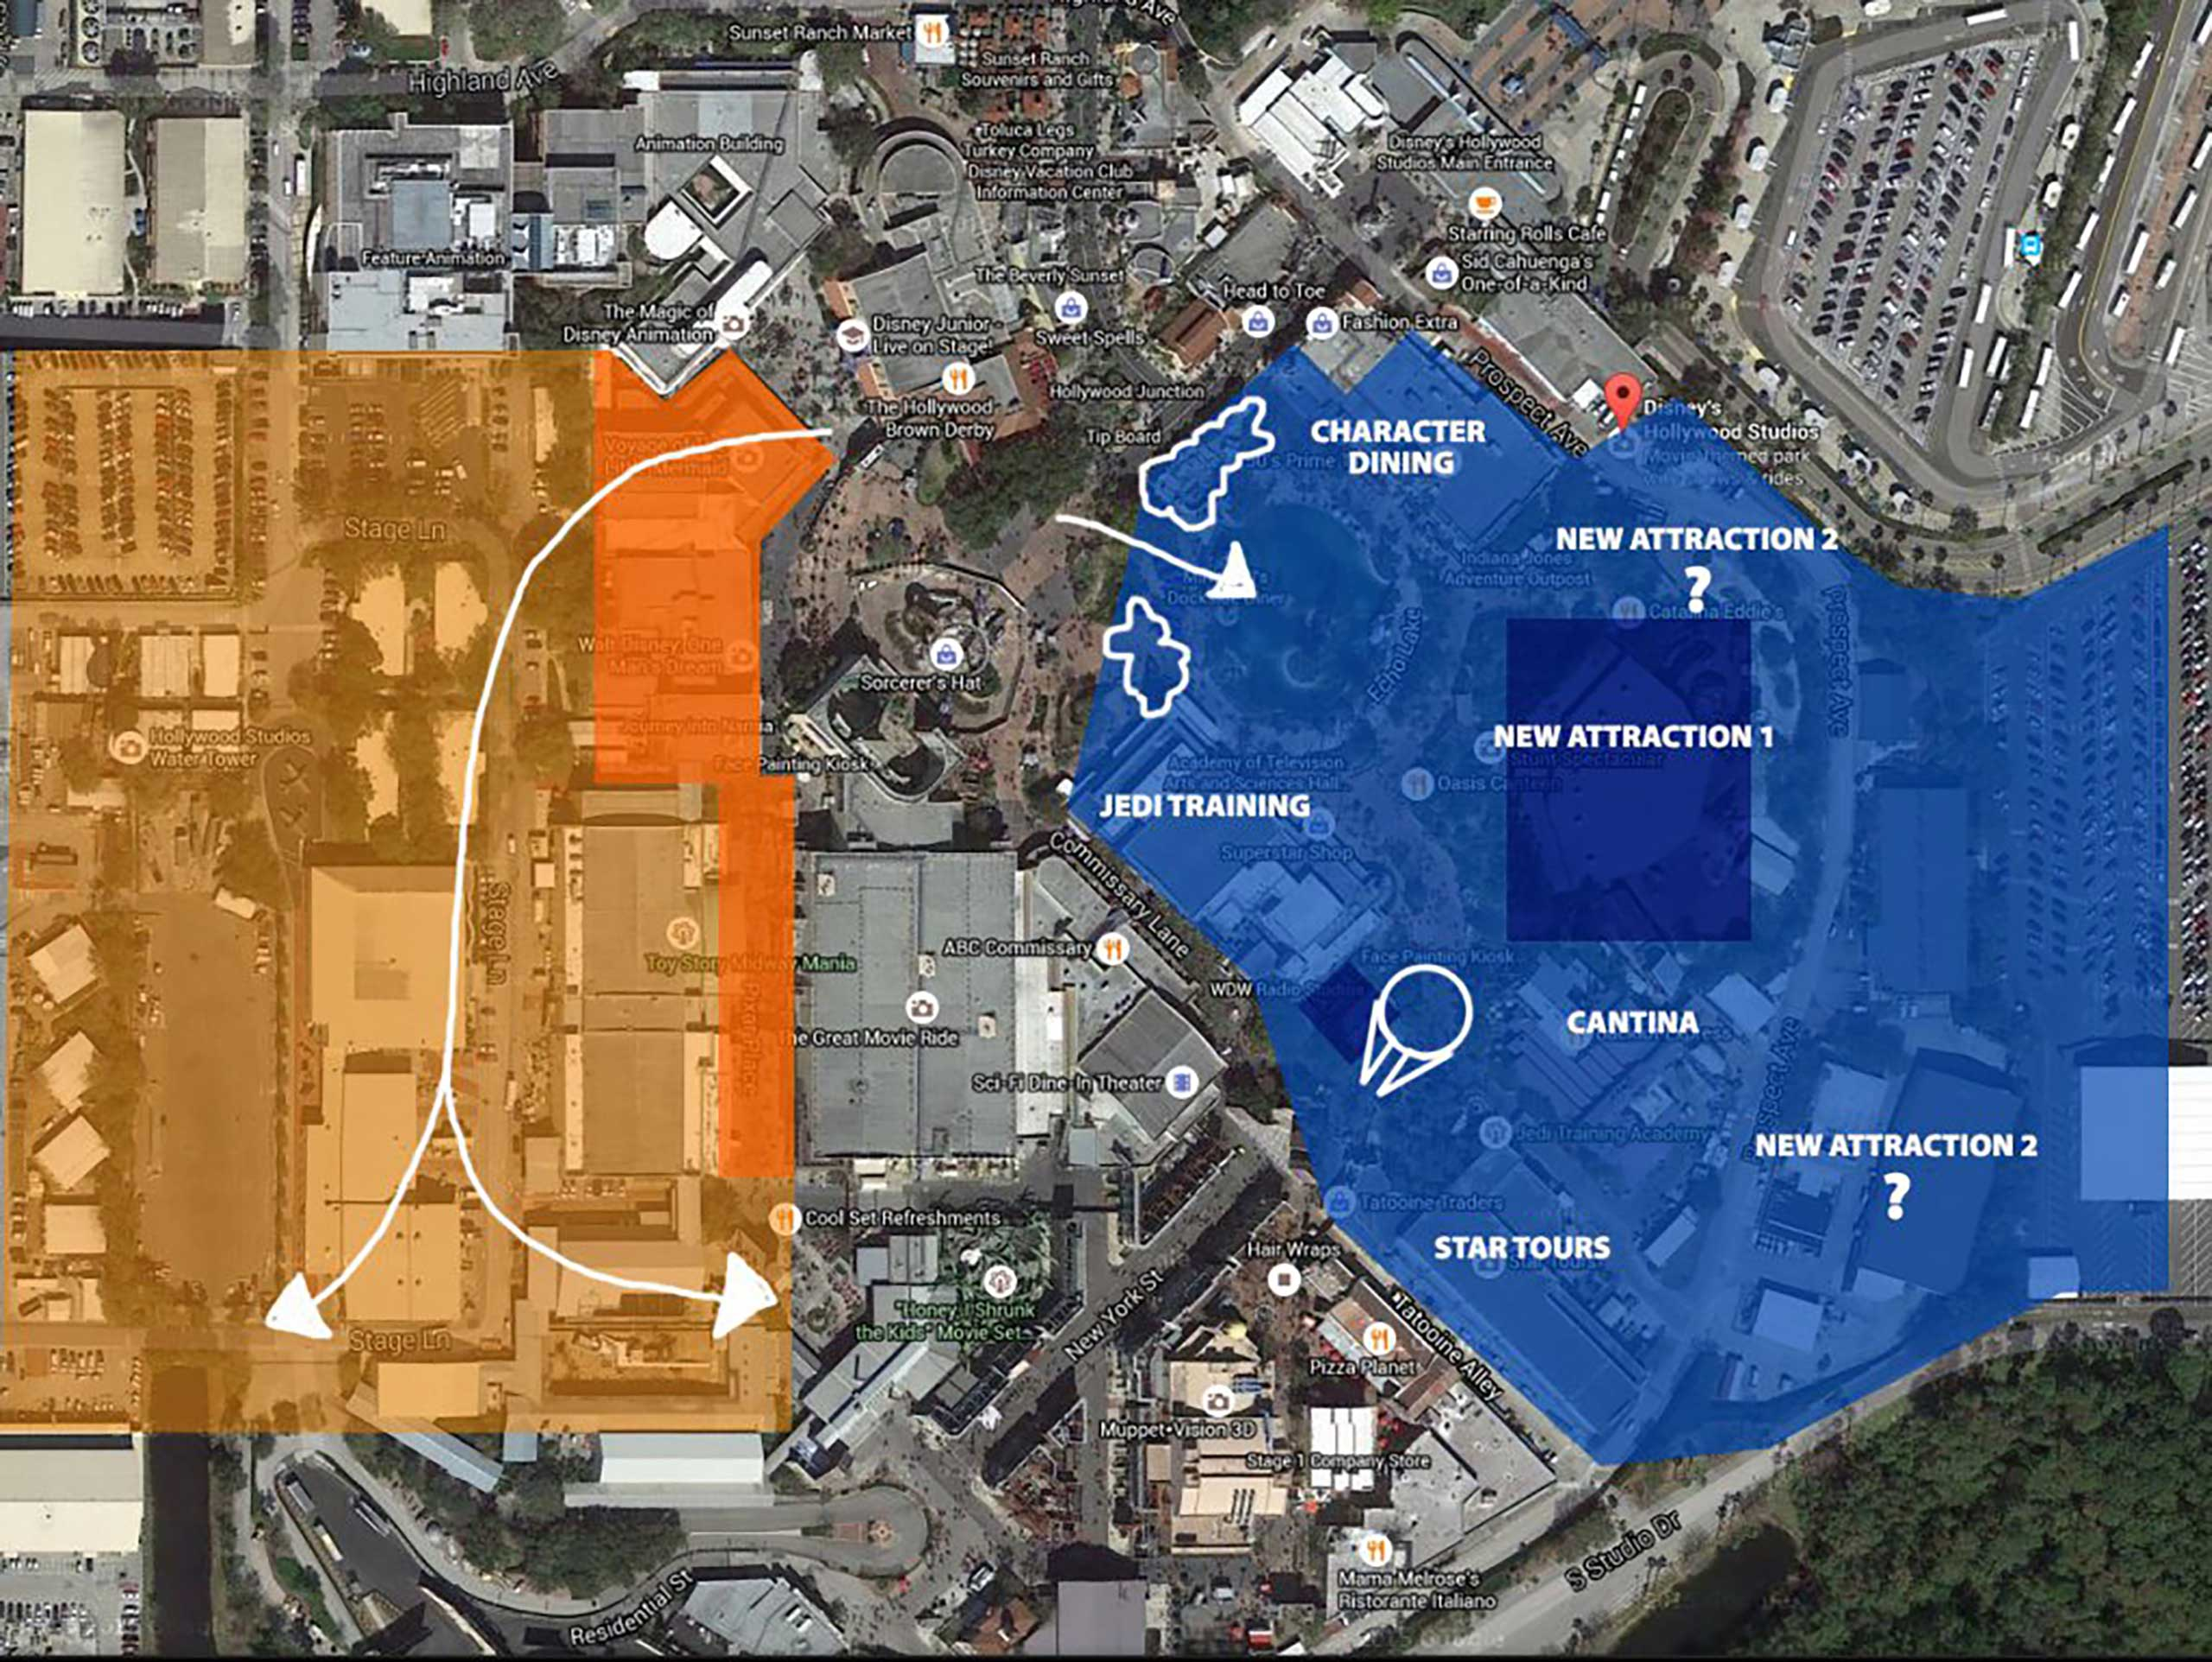 Possible location of Star Wars Land and Toy Story Land at Disney's Hollywood Studios. By Ignohippo.